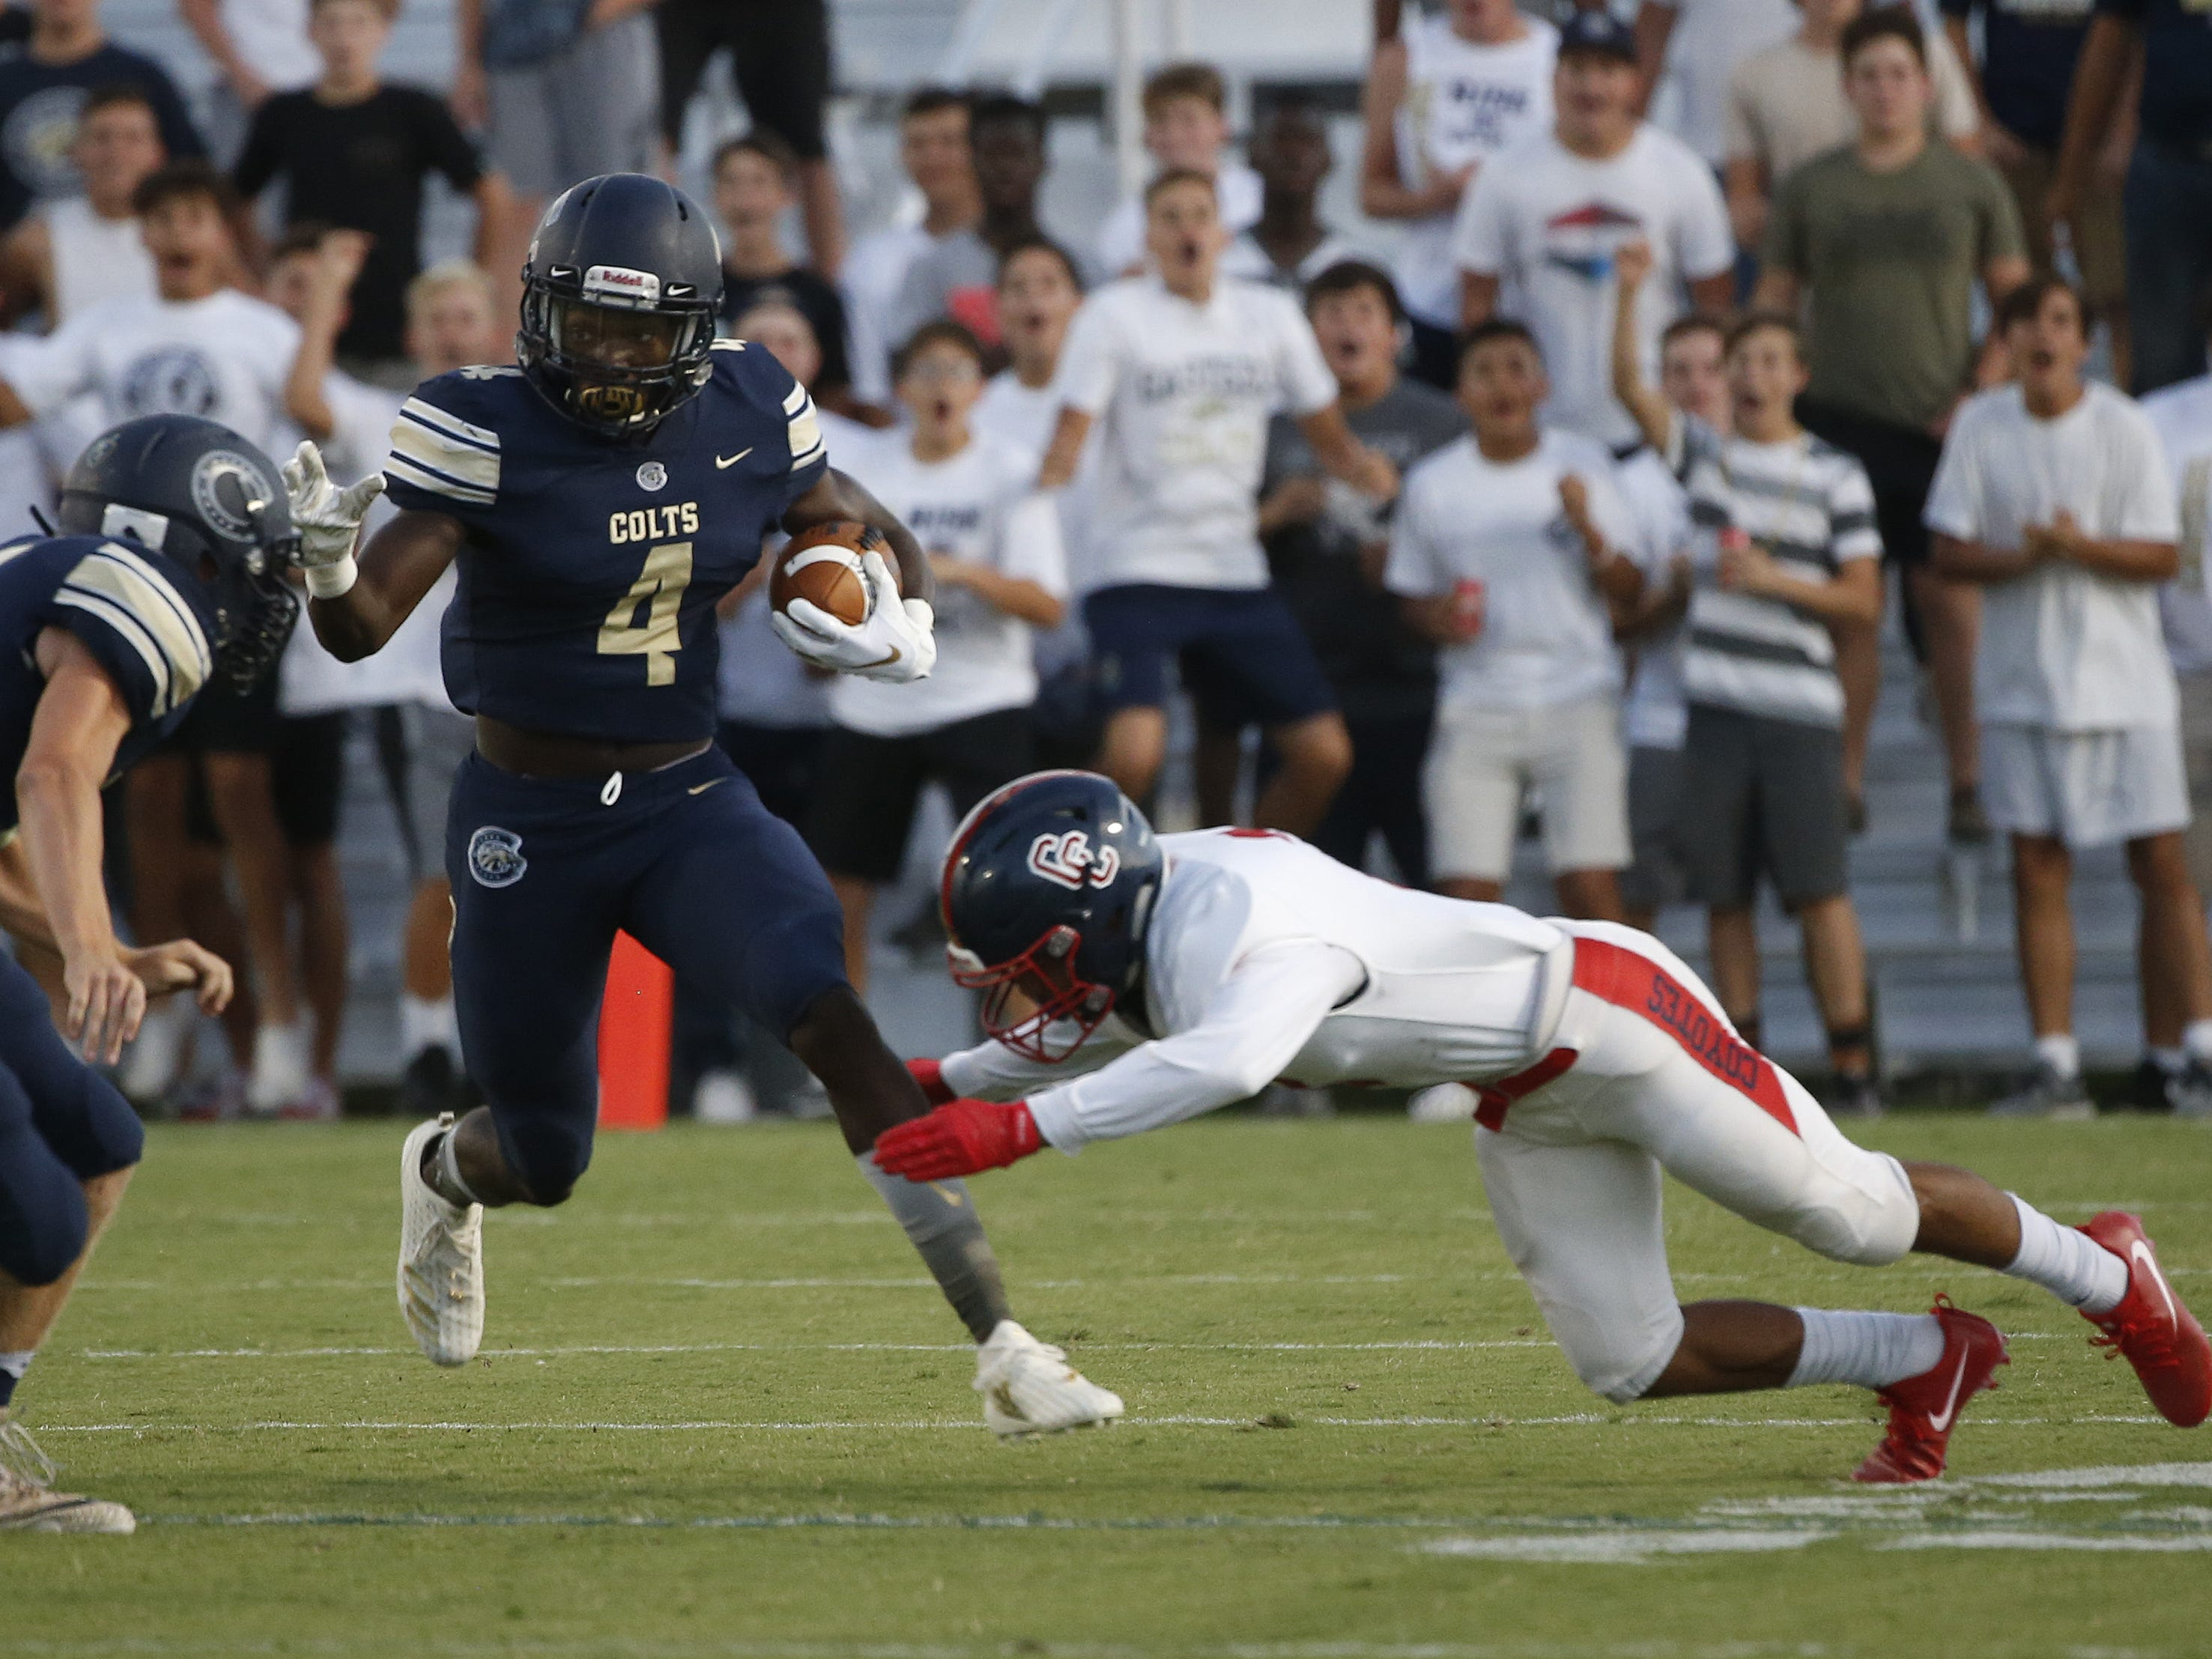 Casteel's Khyheem Waleed (4) returns a kick against Centennial during the first half at Casteel High School in Queen Creek, Ariz. on Aug. 17, 2018.